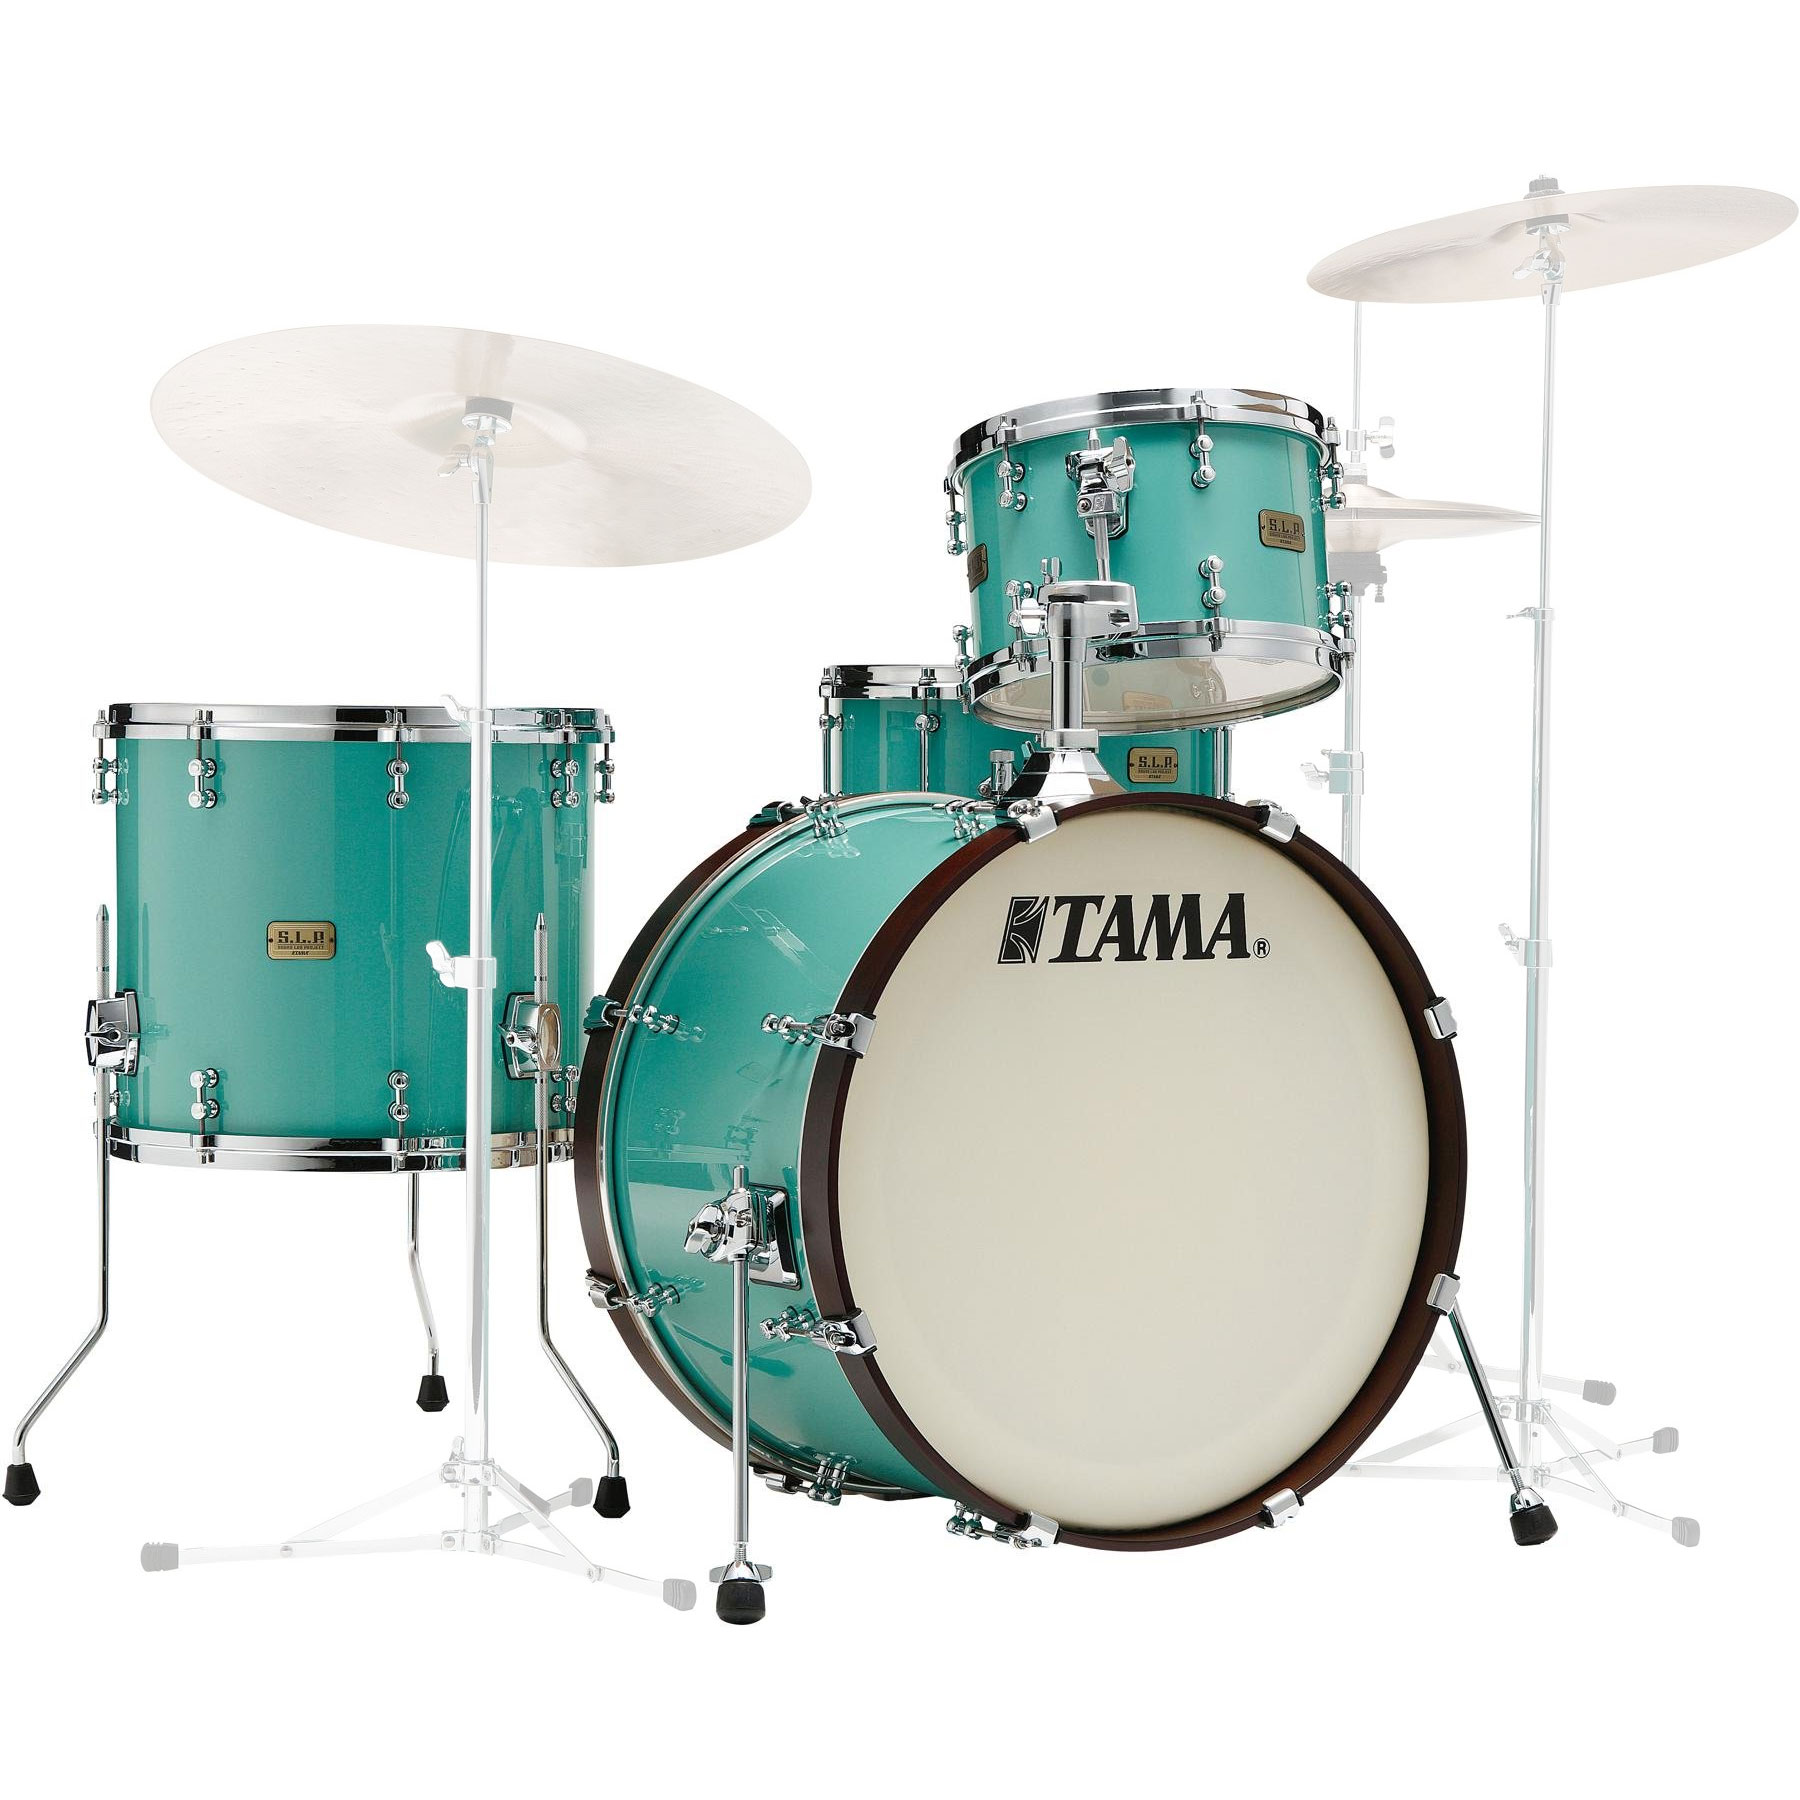 "Tama S.L.P. Fat Spruce 3-Piece Drum Set Shell Pack (22"" Bass, 12/16"" Toms) in Turquoise"